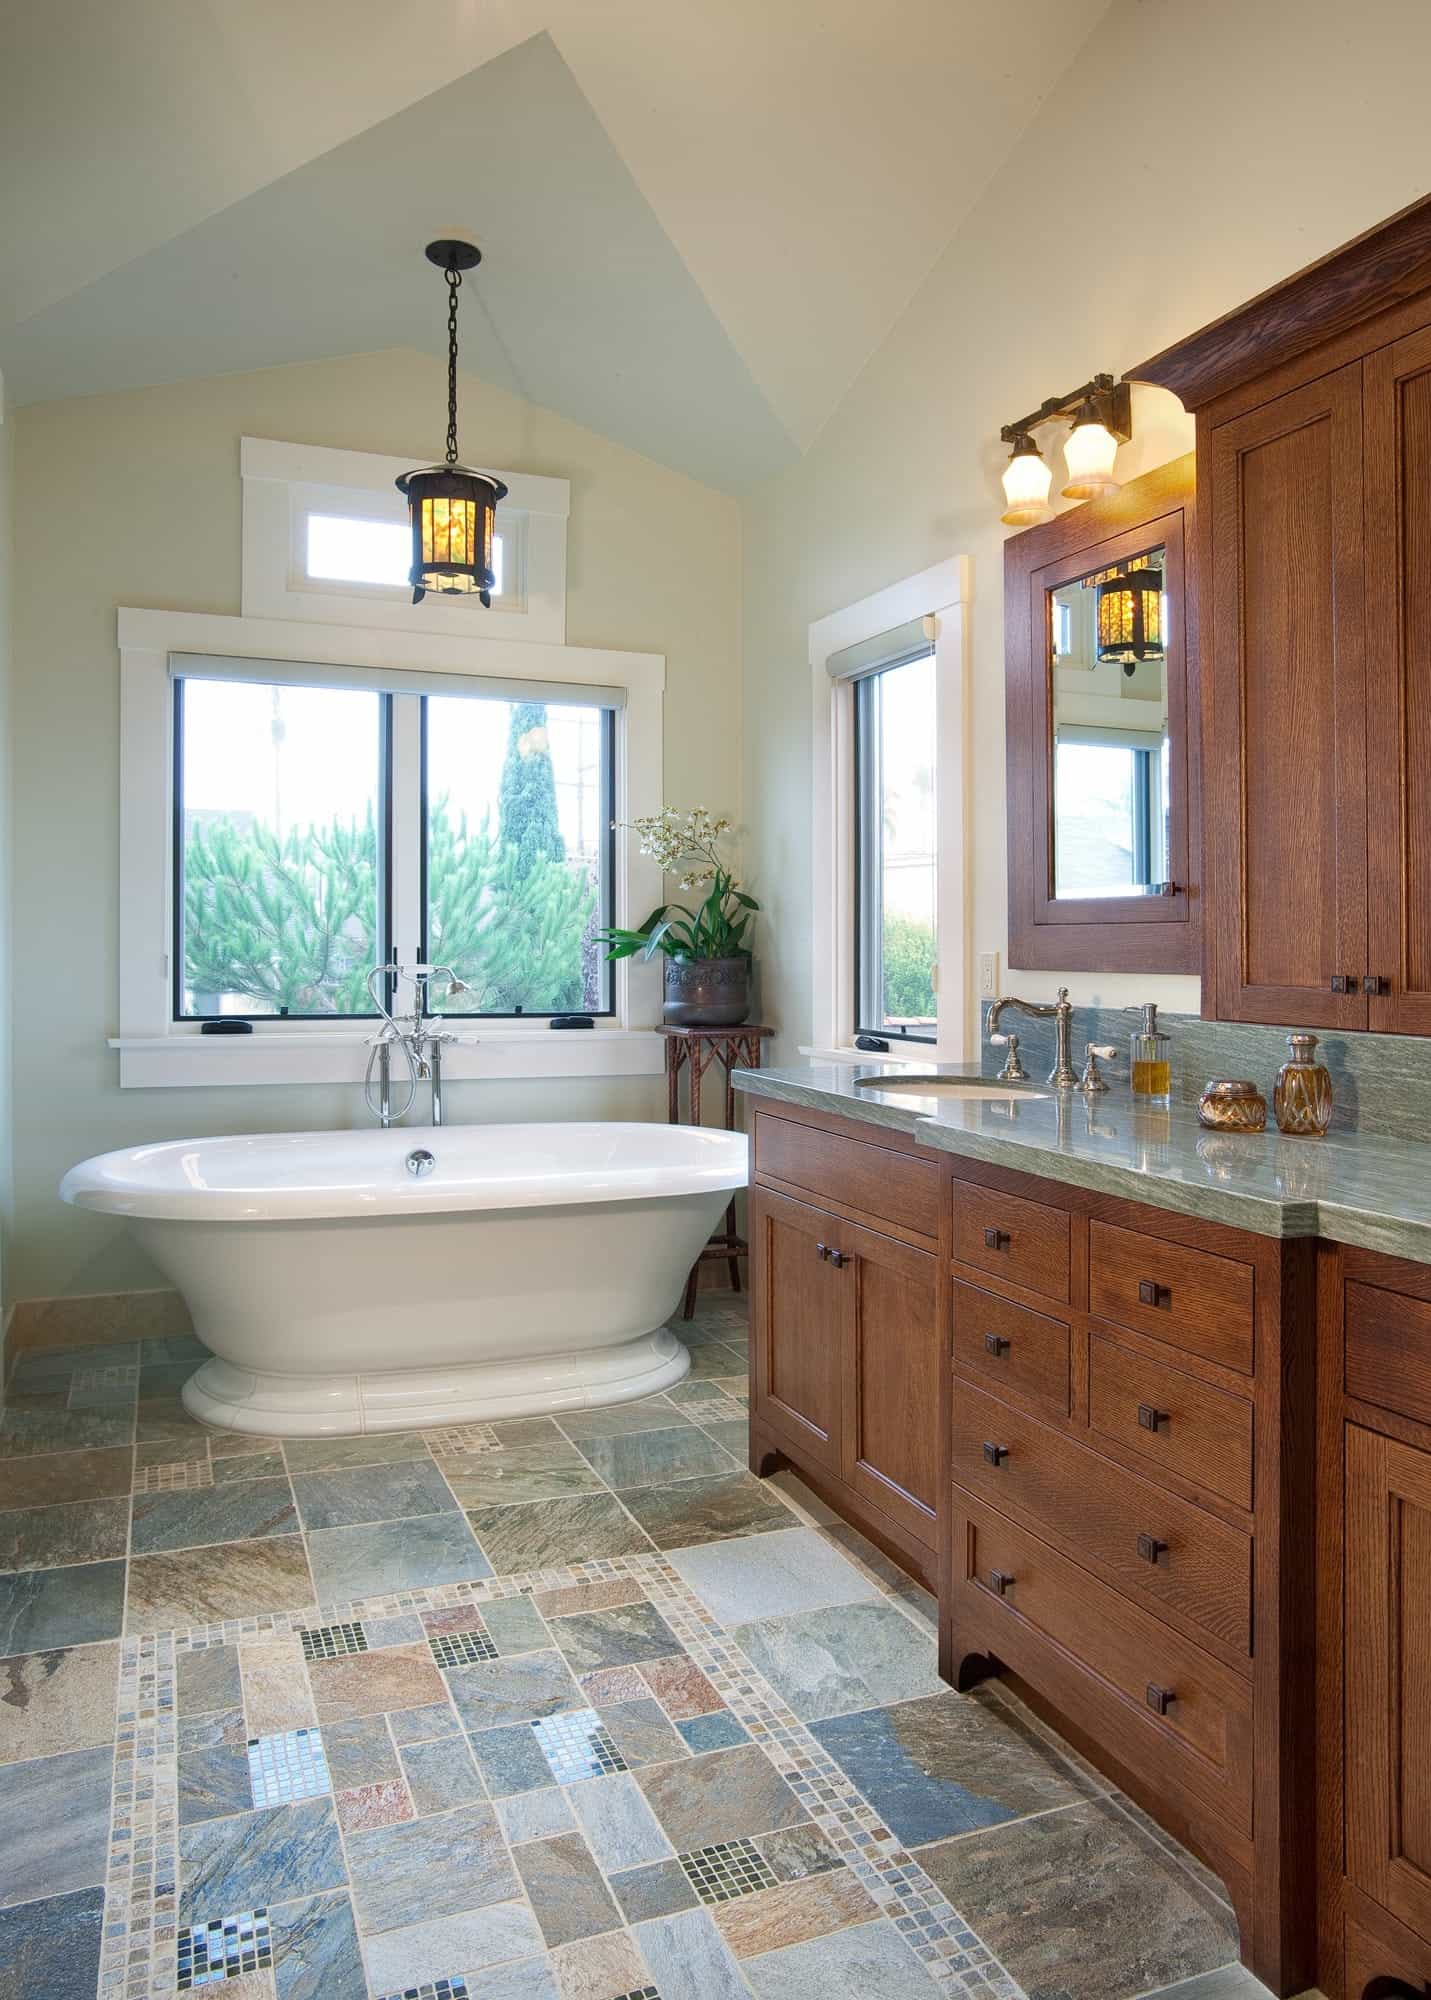 Patchwork Tile Flooring And White Bathtub In Craftsman Bathroom With Built In Wood Cabinets (View 8 of 20)